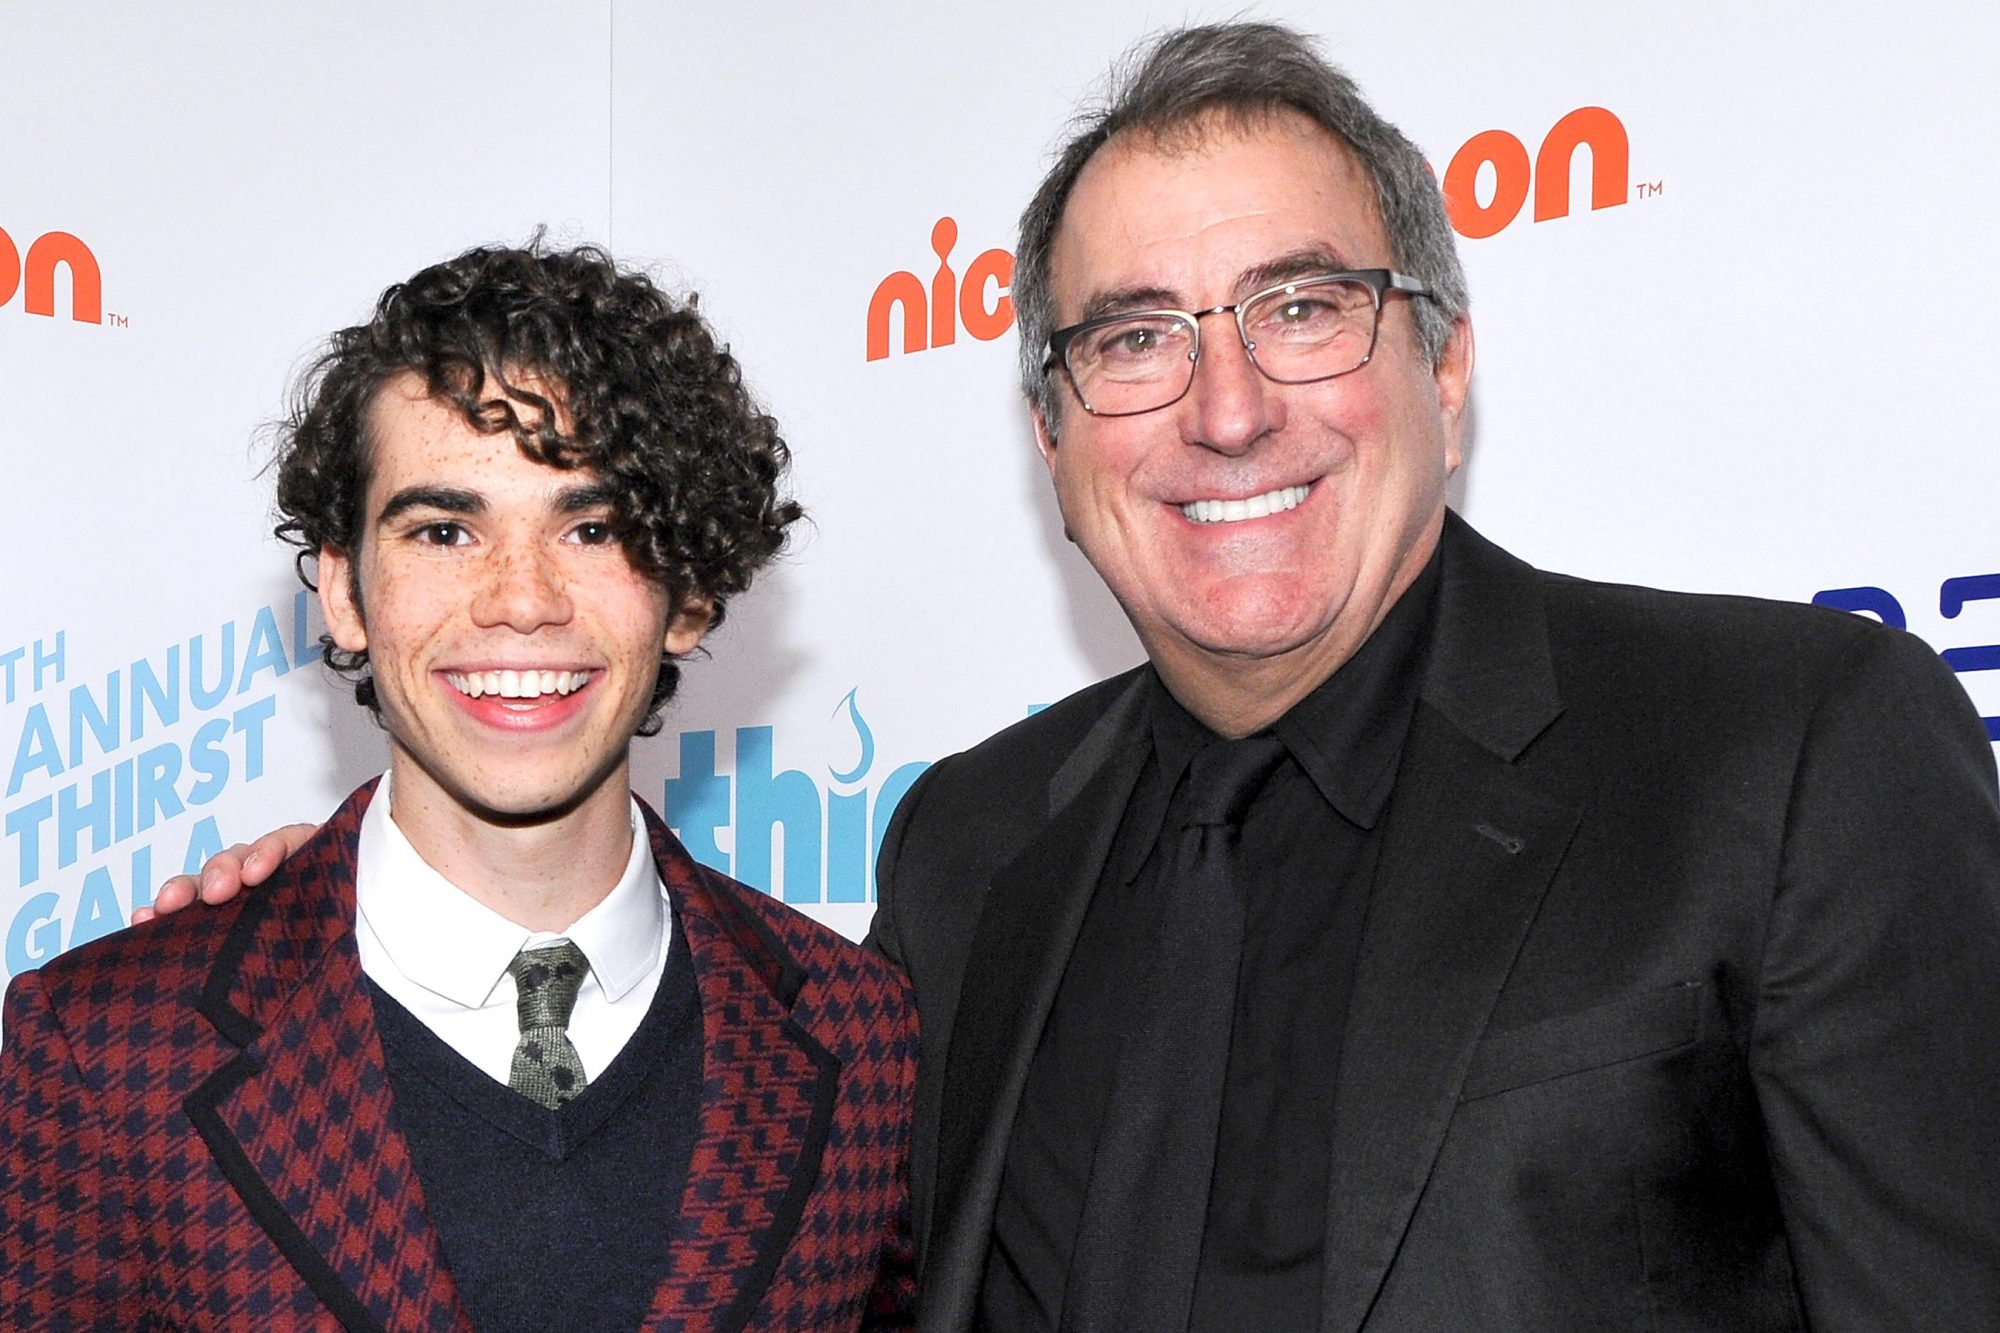 BEVERLY HILLS, CA - APRIL 21: (L-R) Cameron Boyce and Kenny Ortega attend The Thirst Project's 9th Annual Thirst Gala at The Beverly Hills Hotel on April 21, 2018 in Beverly Hills, California. (Photo by John Sciulli/Getty Images for Thirst Project)